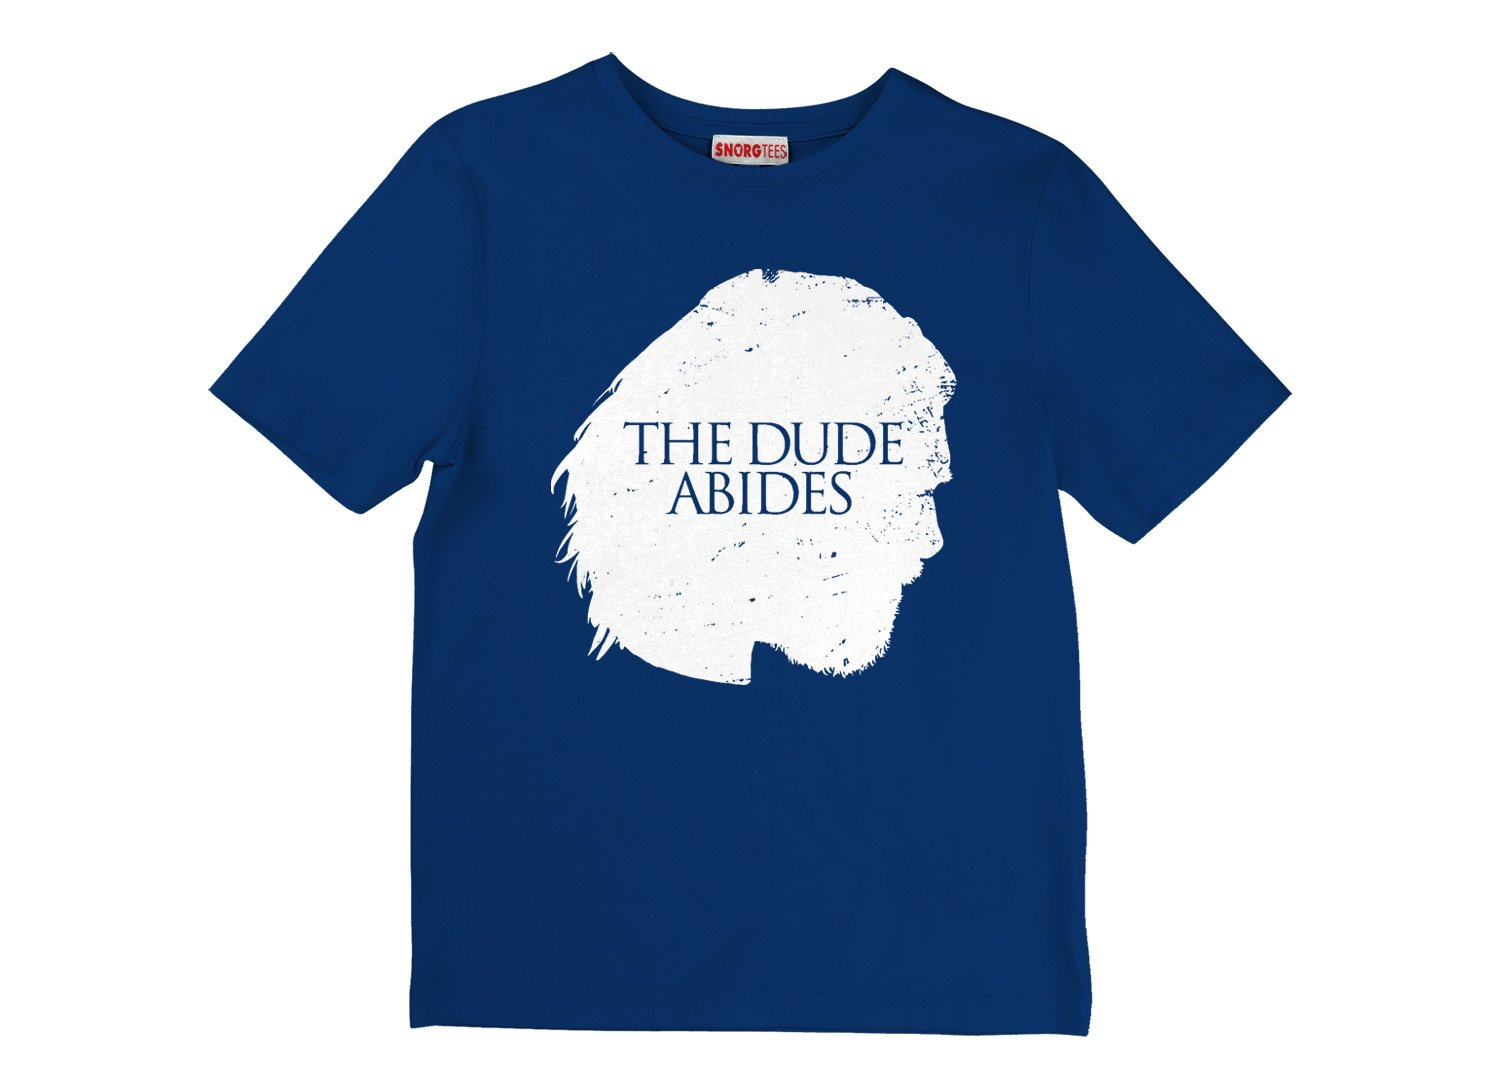 The Dude Abides on Kids T-Shirt